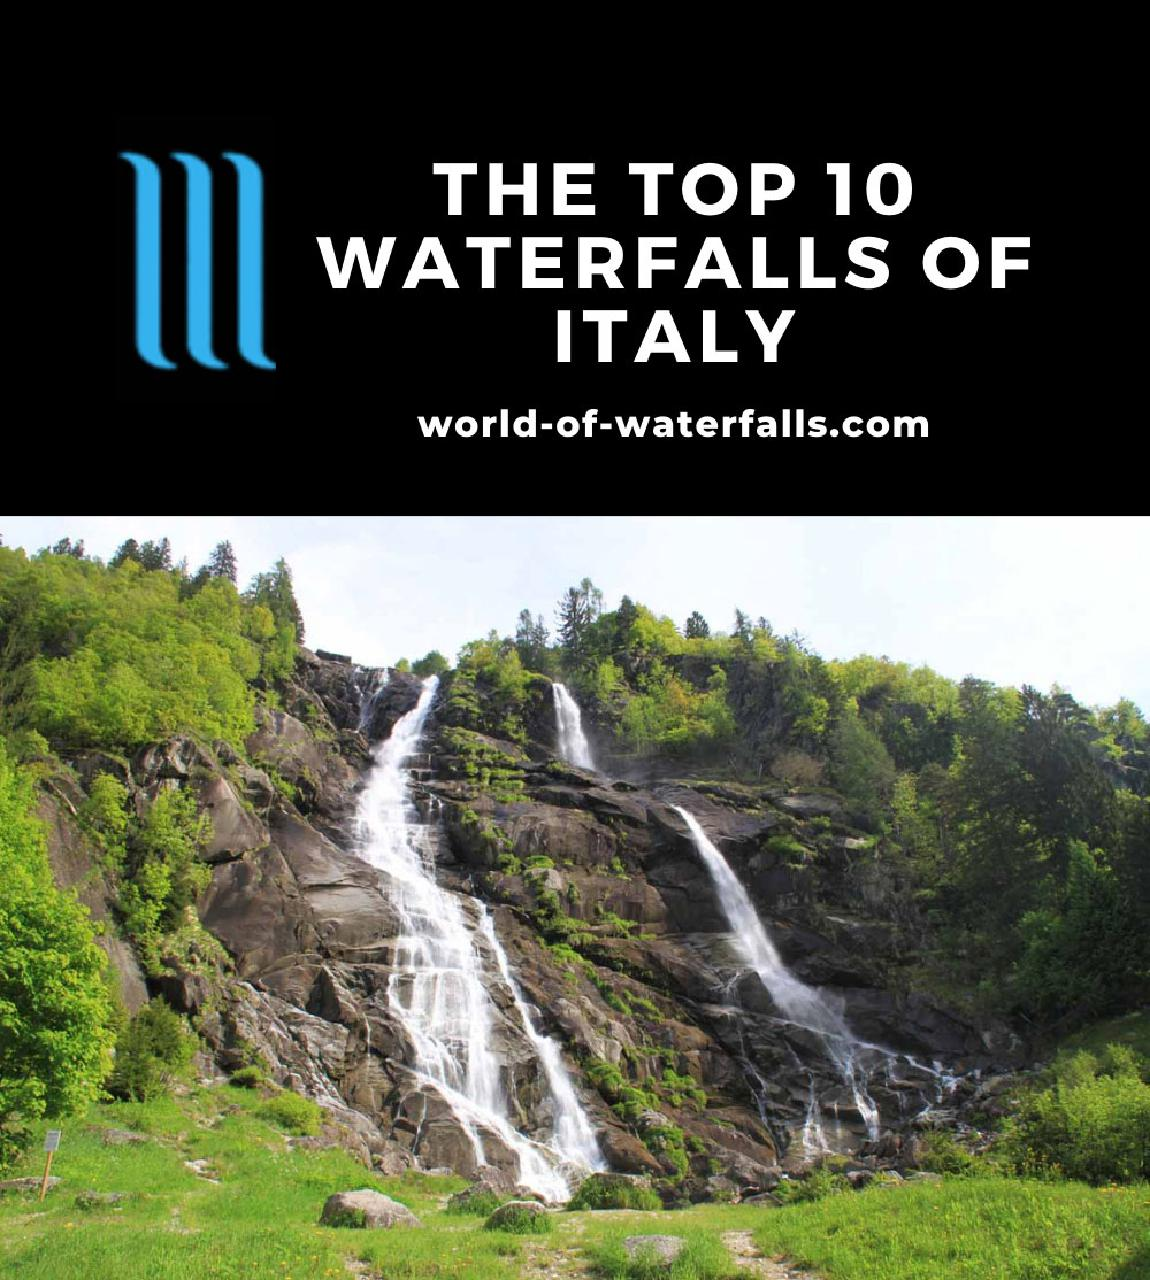 The Top 10 Waterfalls of Italy